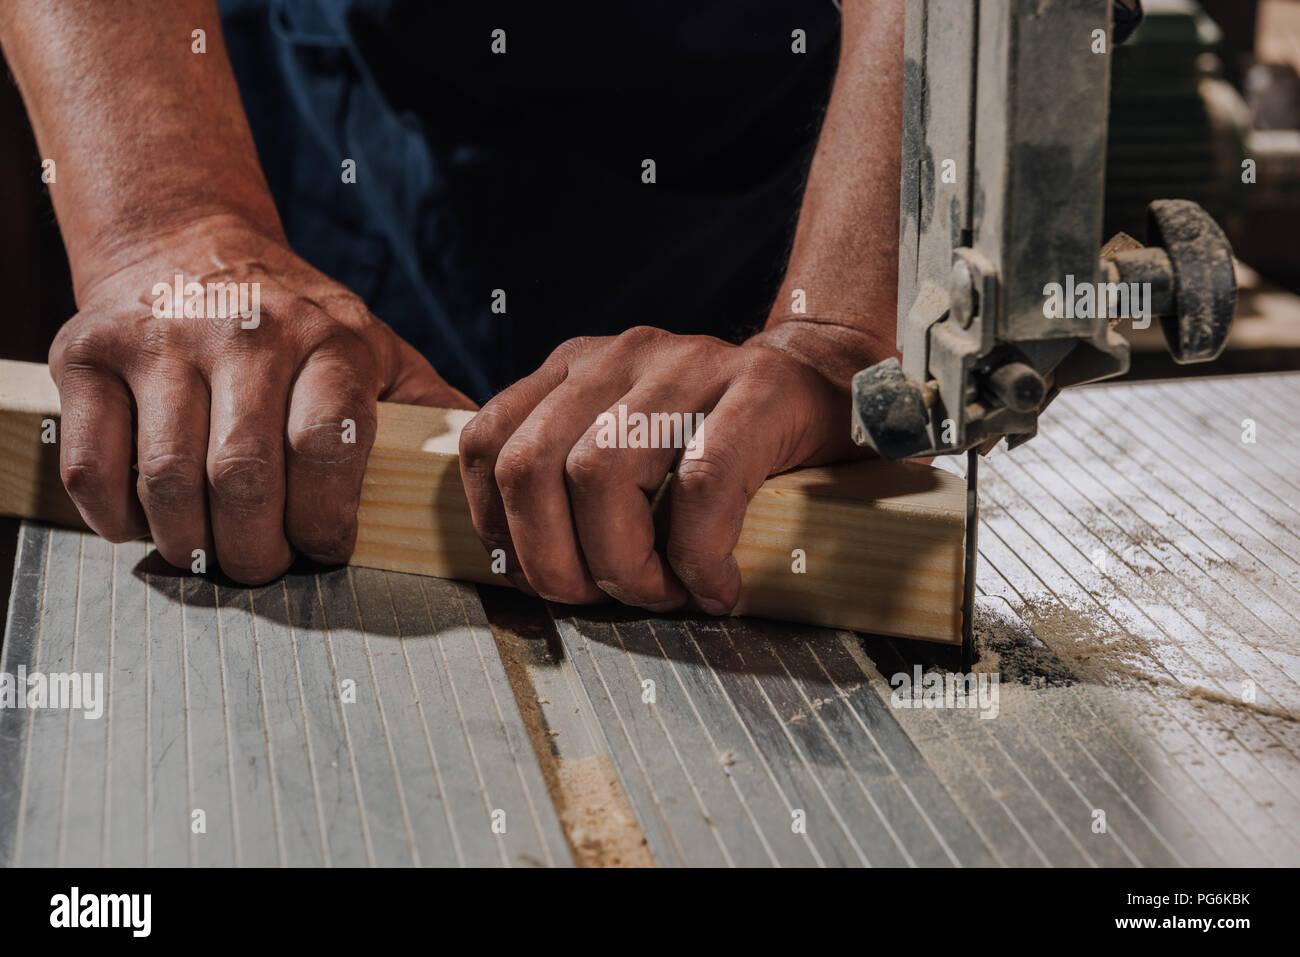 partial view of woodworker using electric drill on wood at workshop - Stock Image